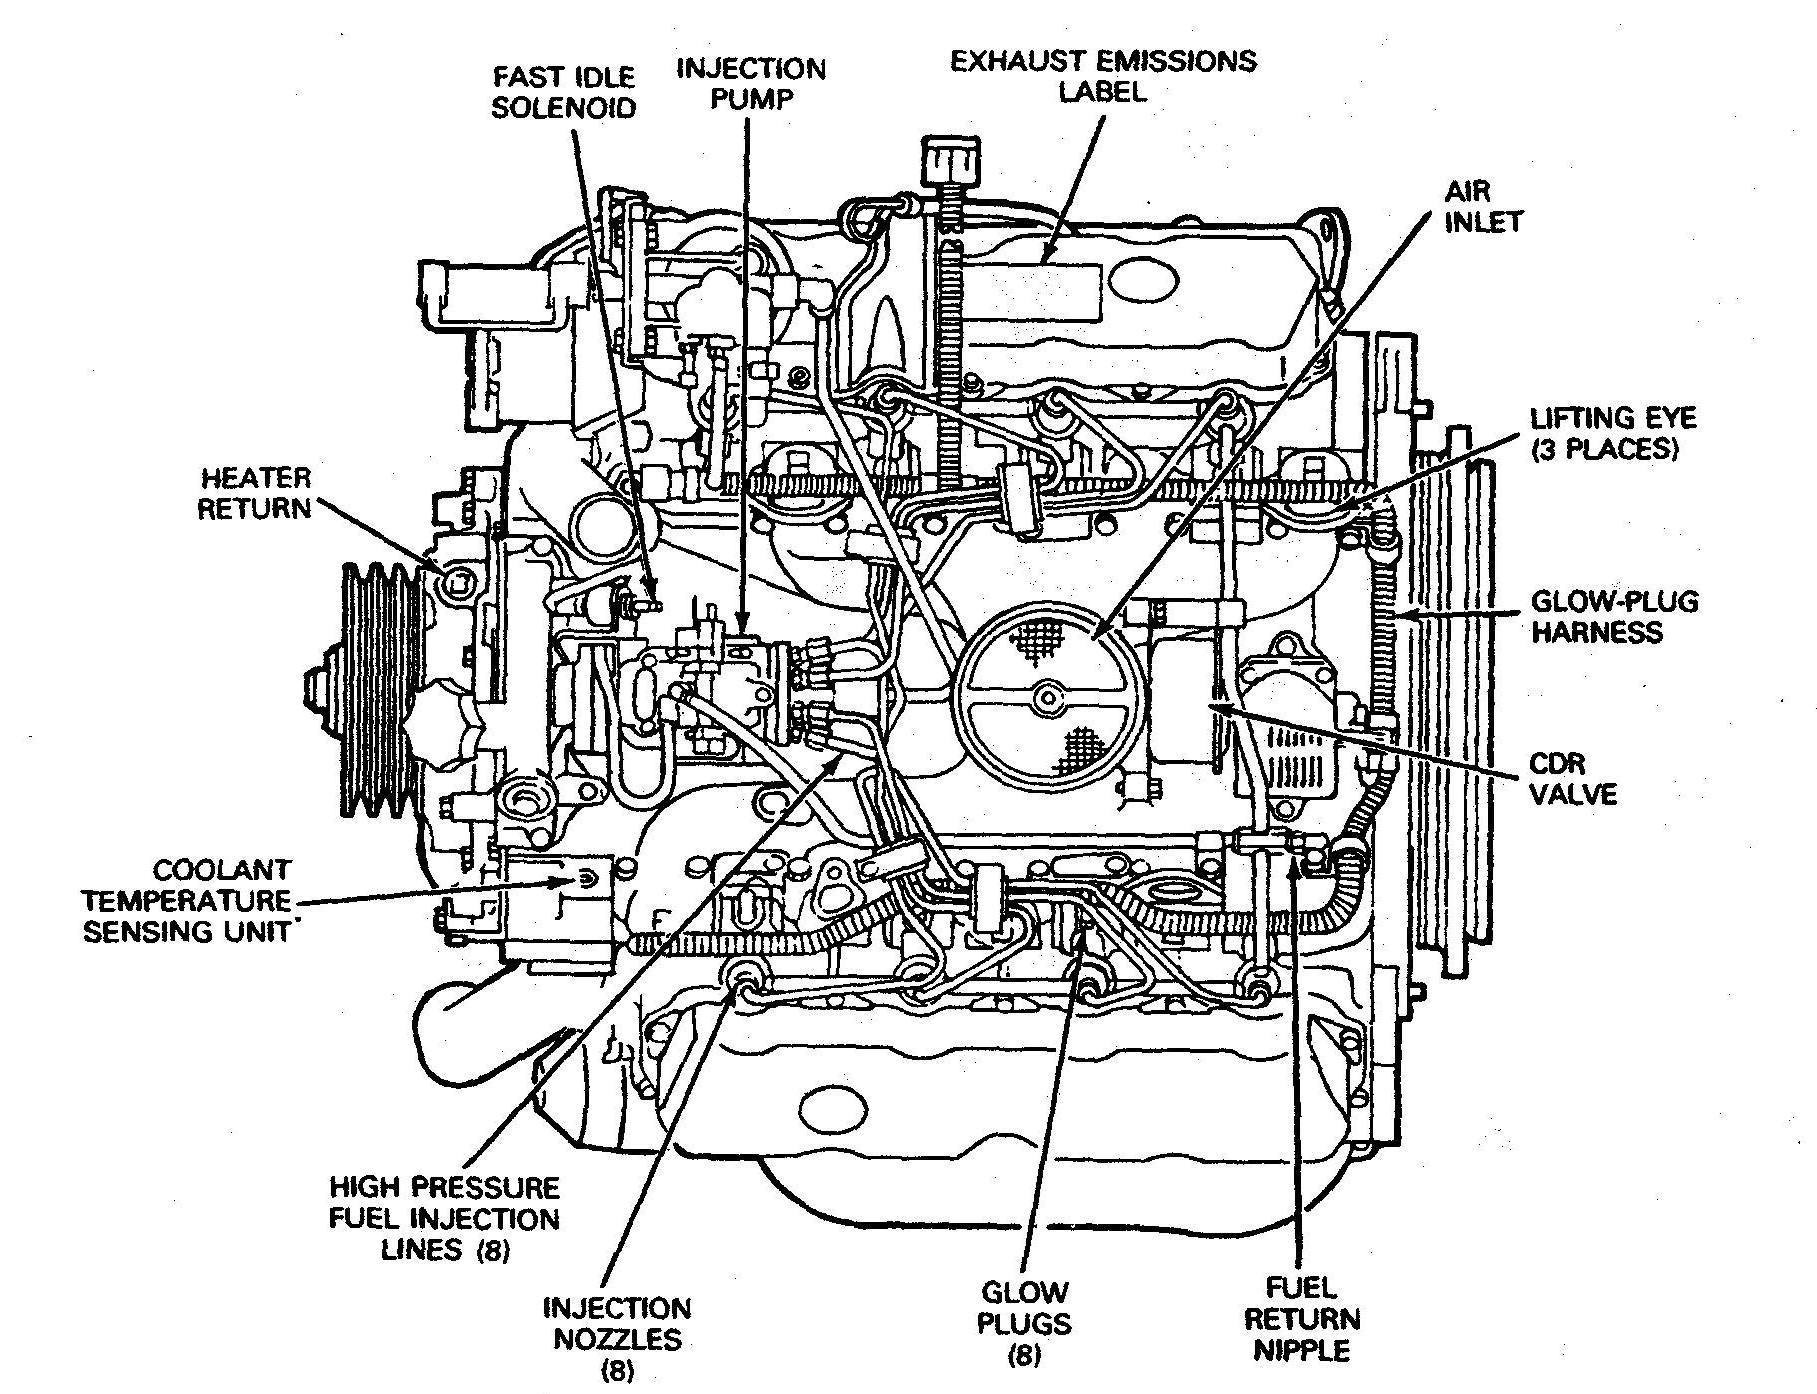 Engine Parts Diagram with Names Engine Parts Diagram Names Automotive  Engine Diagram Wiring Diagrams Of Engine